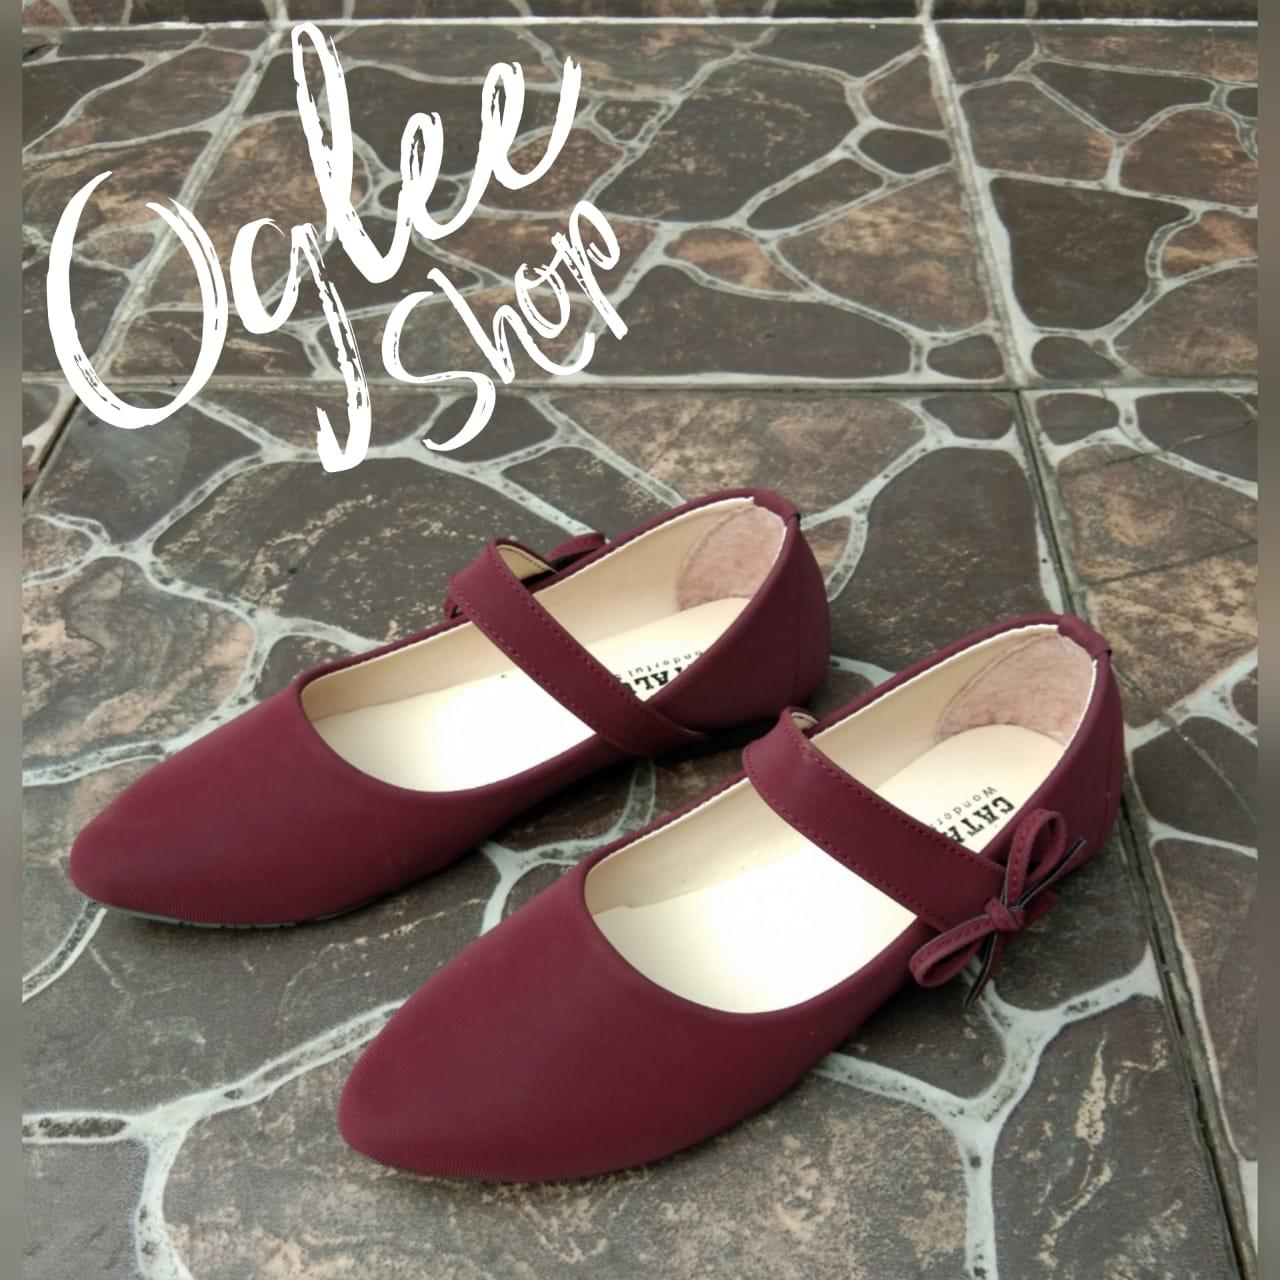 Oglee Shop - Lenka New Flat Shoes